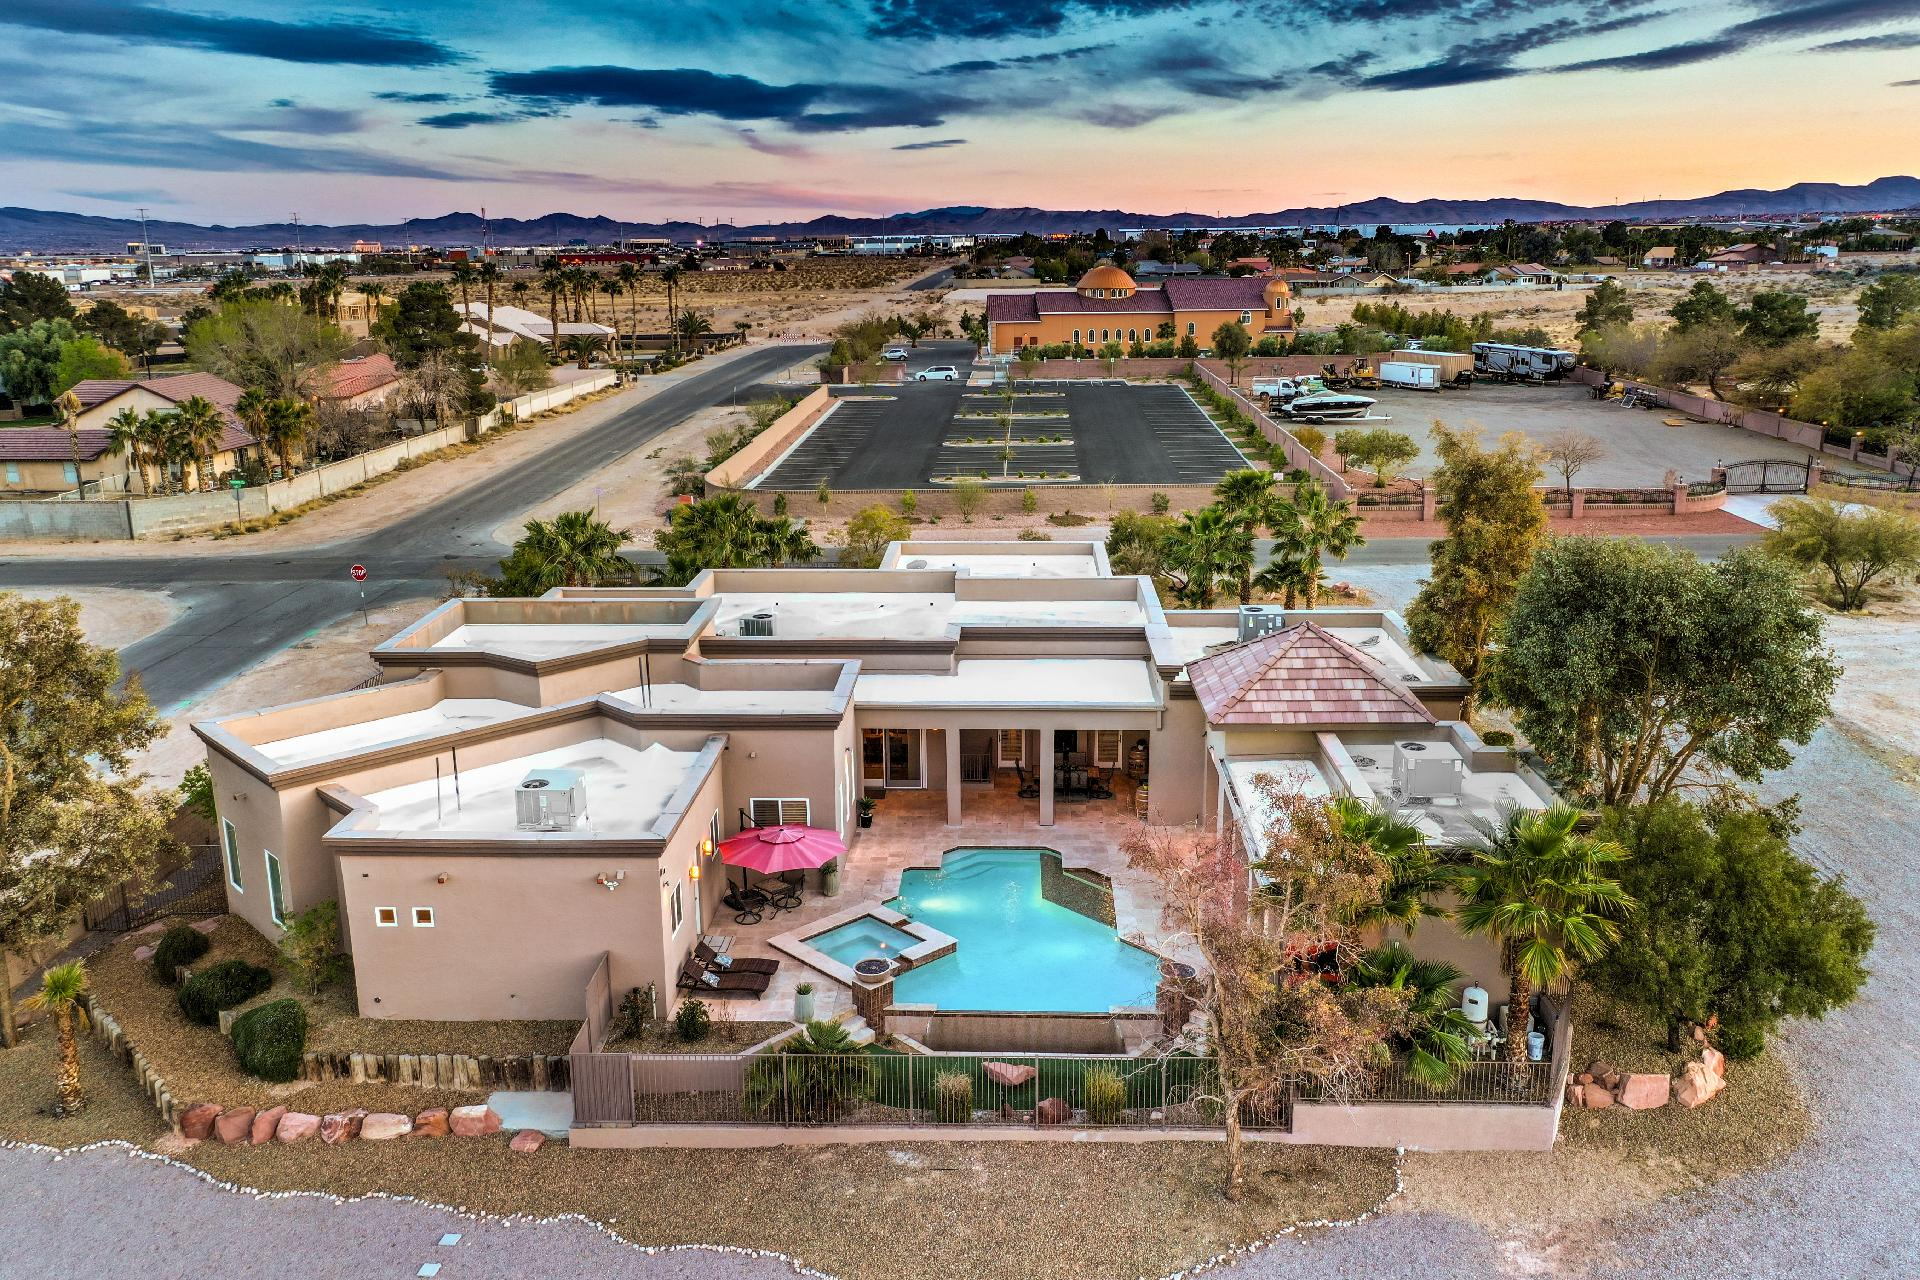 5600 West Oquendo Road Property Image